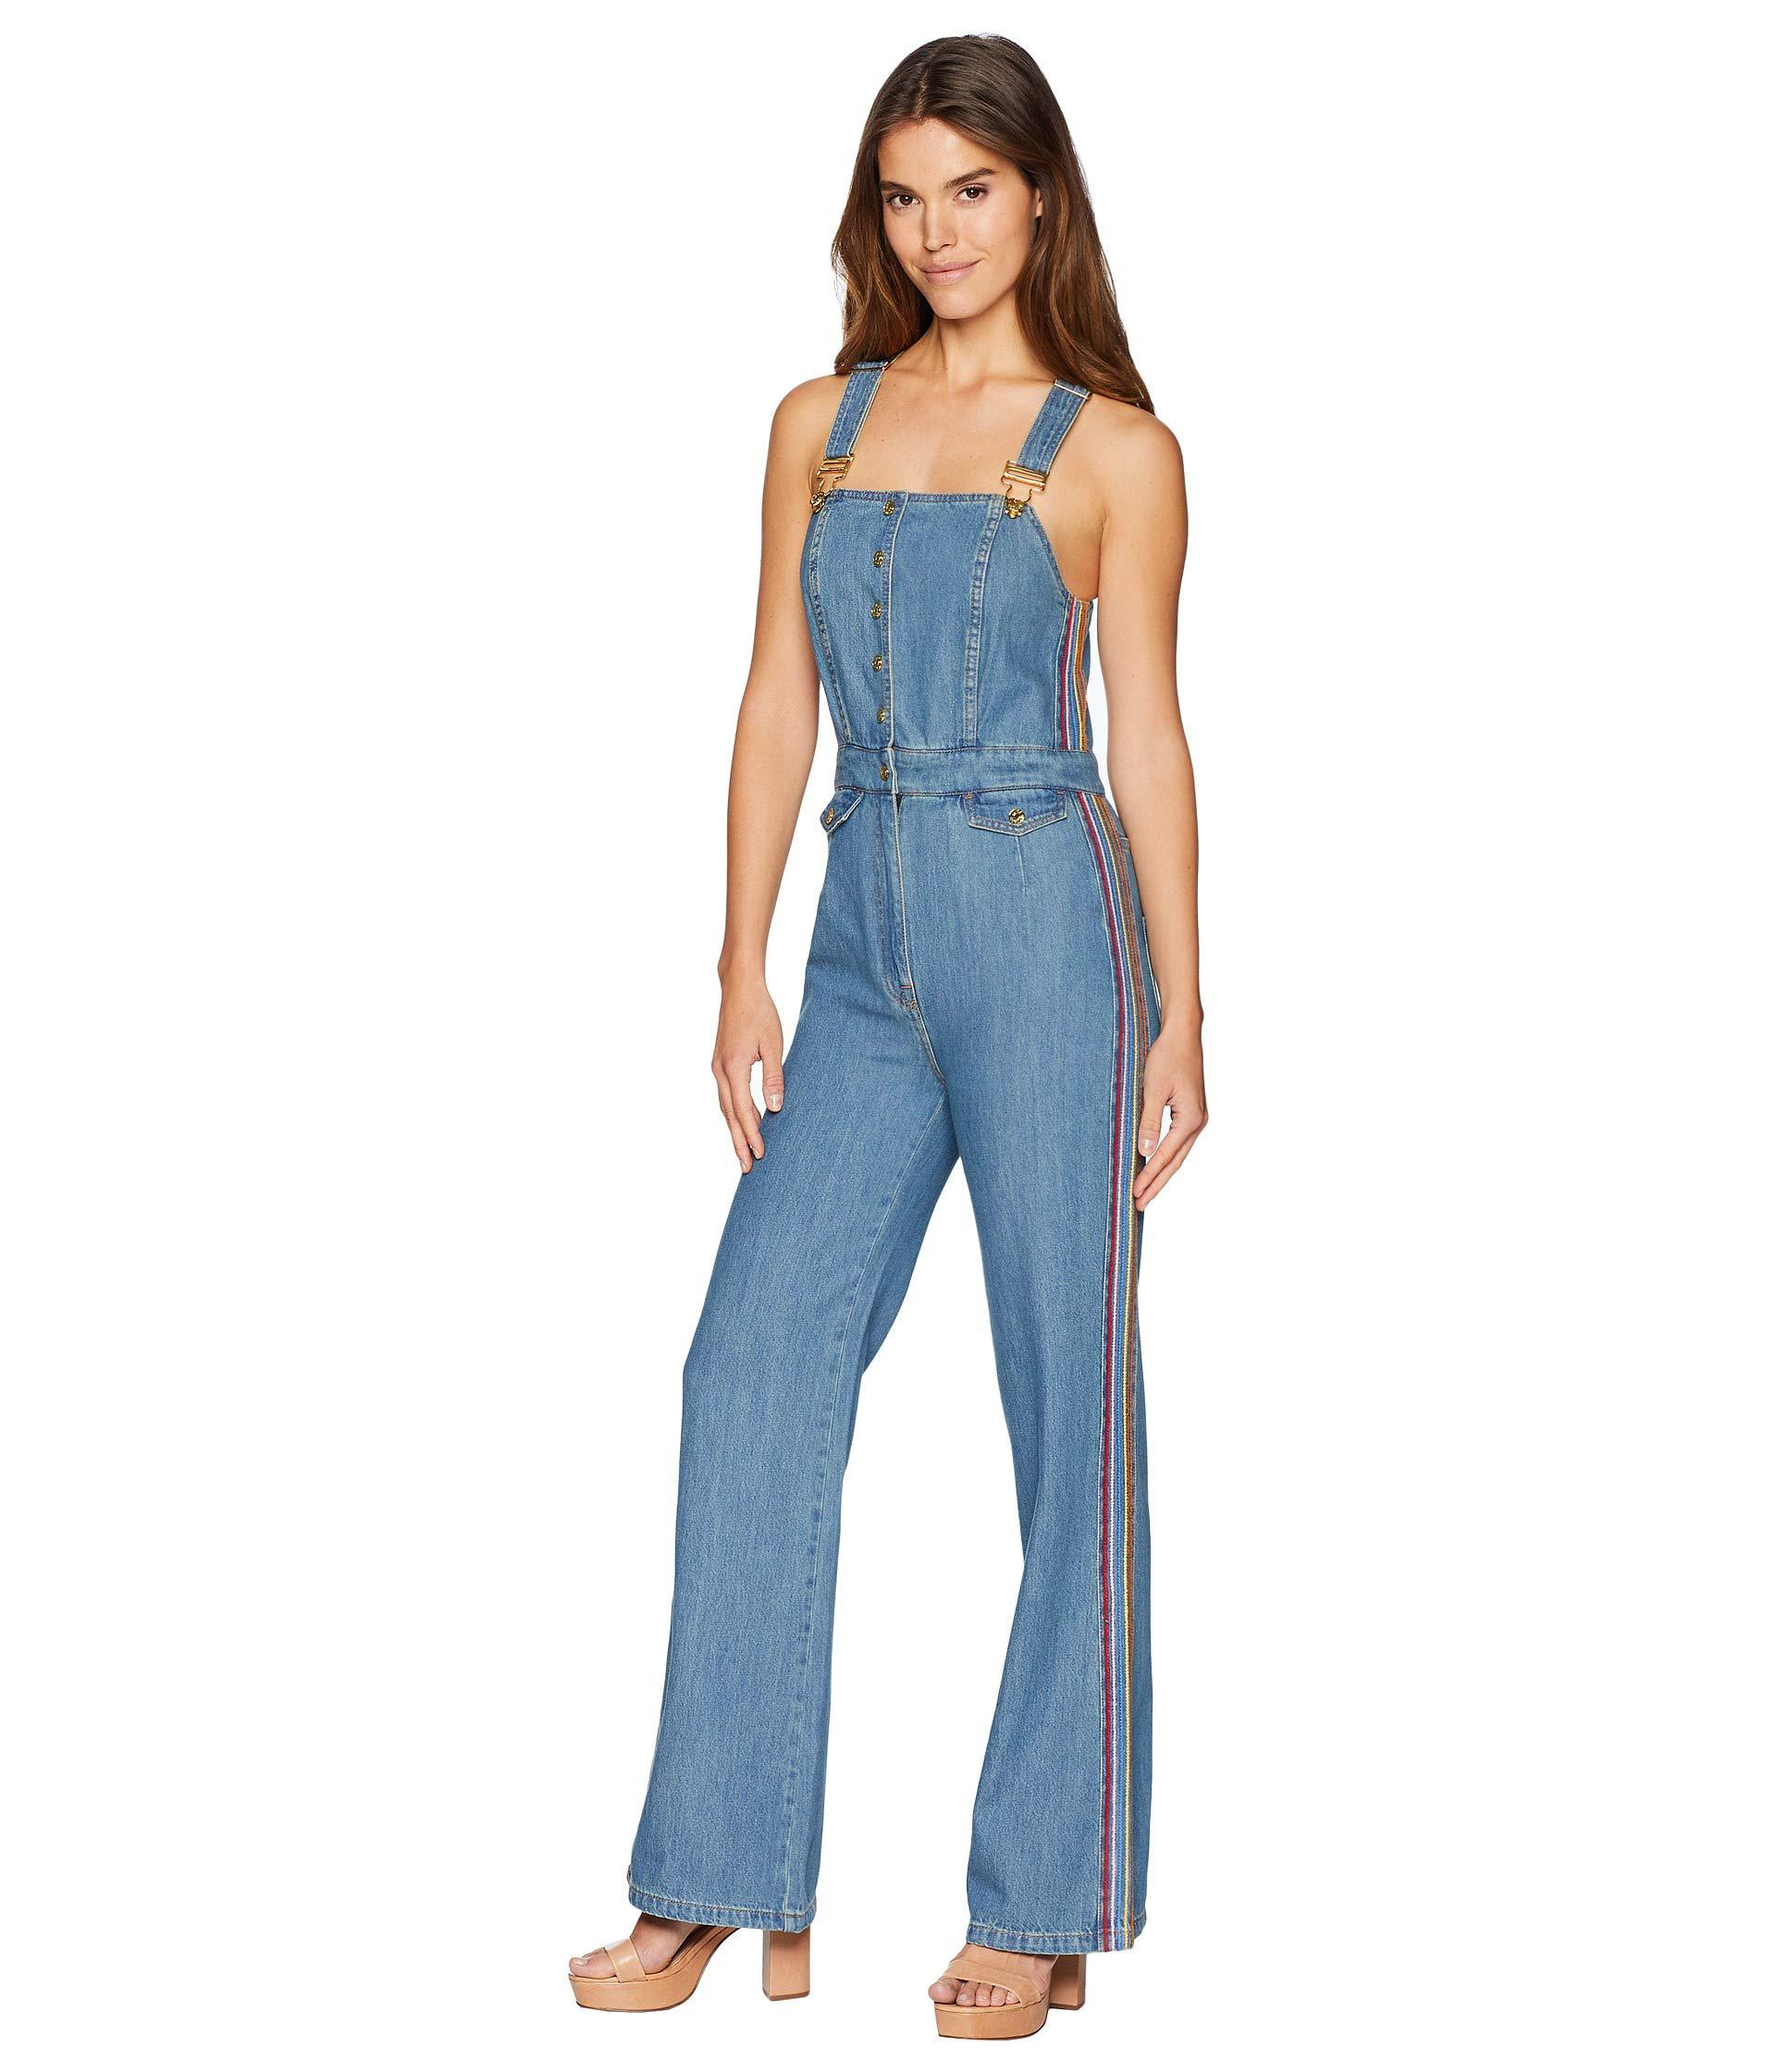 487deef2e41 Lyst - Juicy Couture Denim Multicolor Embroidered Overall in Blue